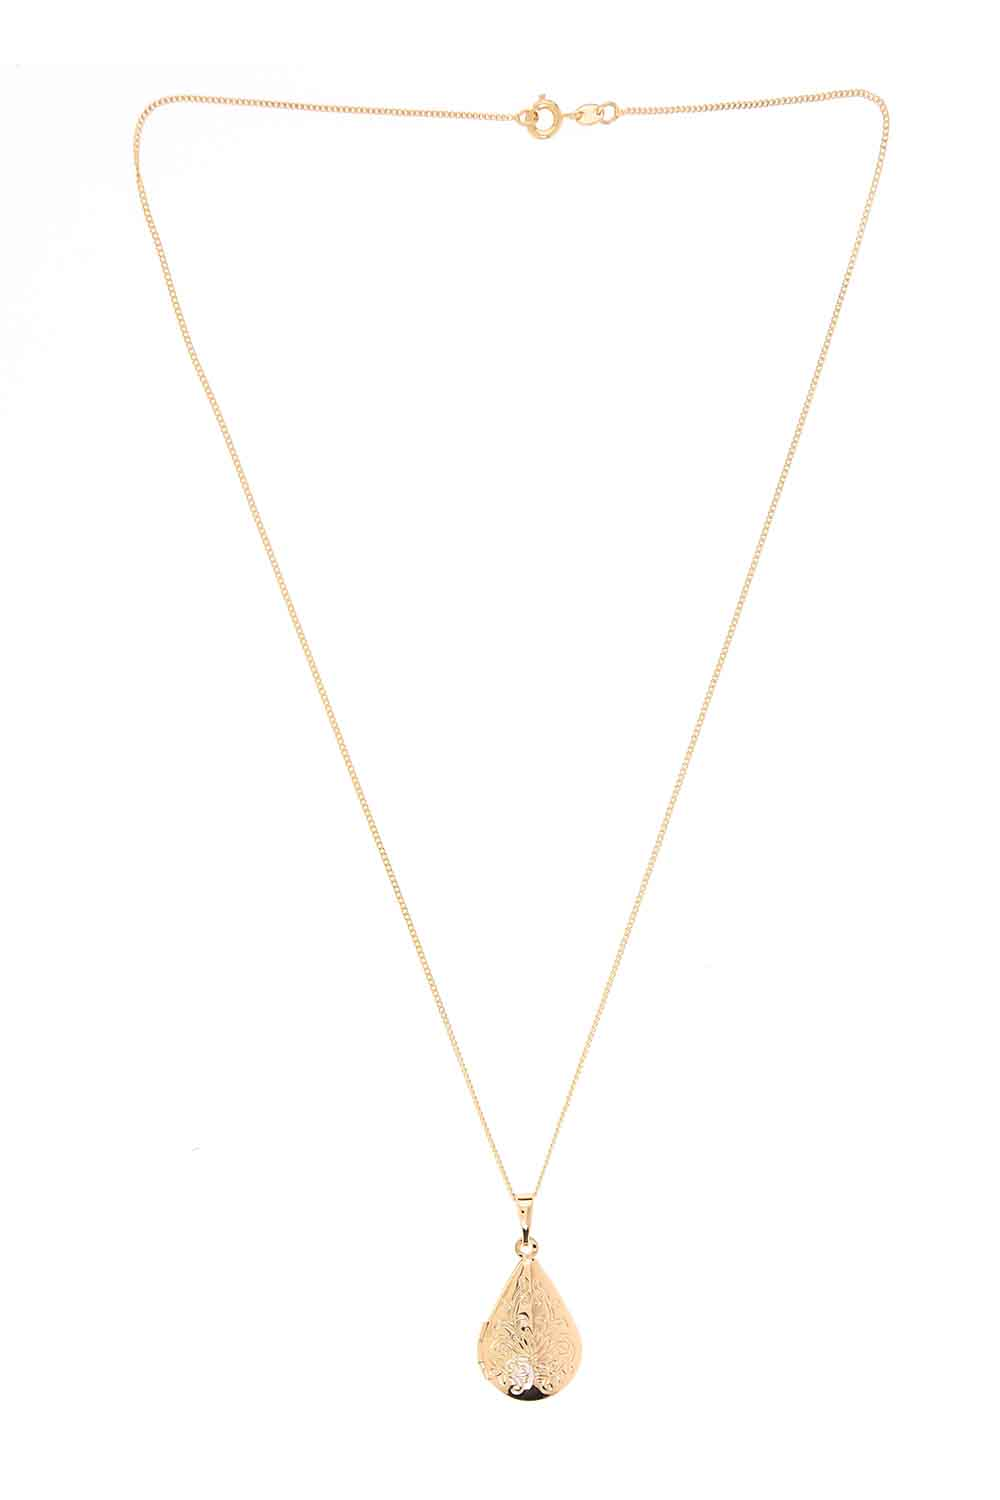 MIZALLE Openable Design Necklace (St) (1)